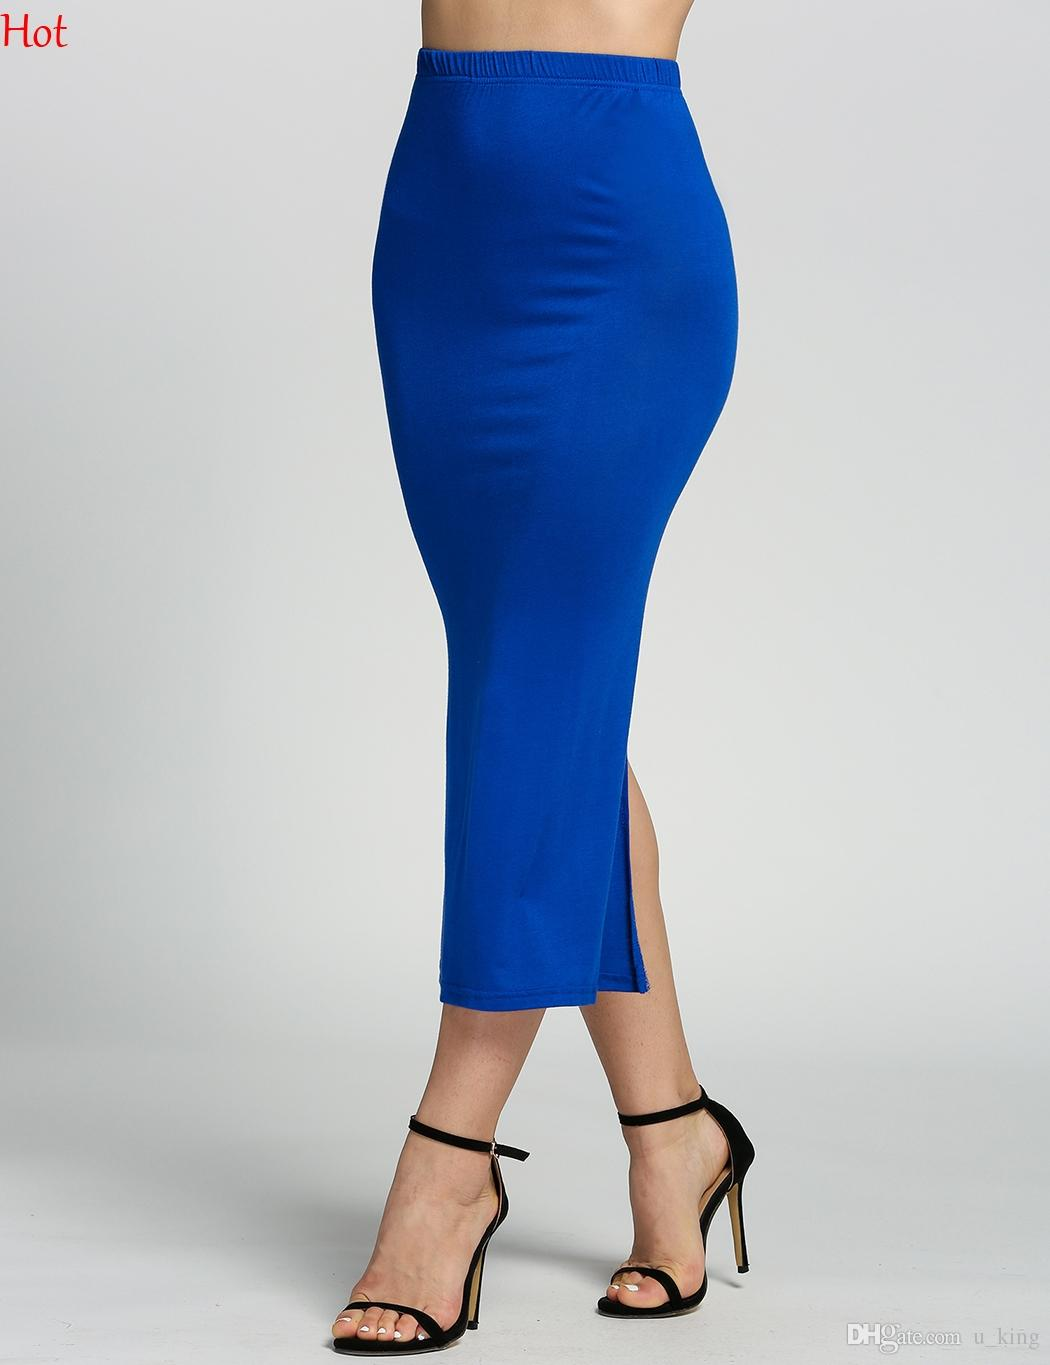 8ee73ab634 2019 High Waist Modal Skirt Bodycon Slim Fit Sexy Pencil Skirts Maxi Long  Casual Mermaid Skirt Party Bar Club Travel Colors Split Skirt SV018491 From  U_king ...